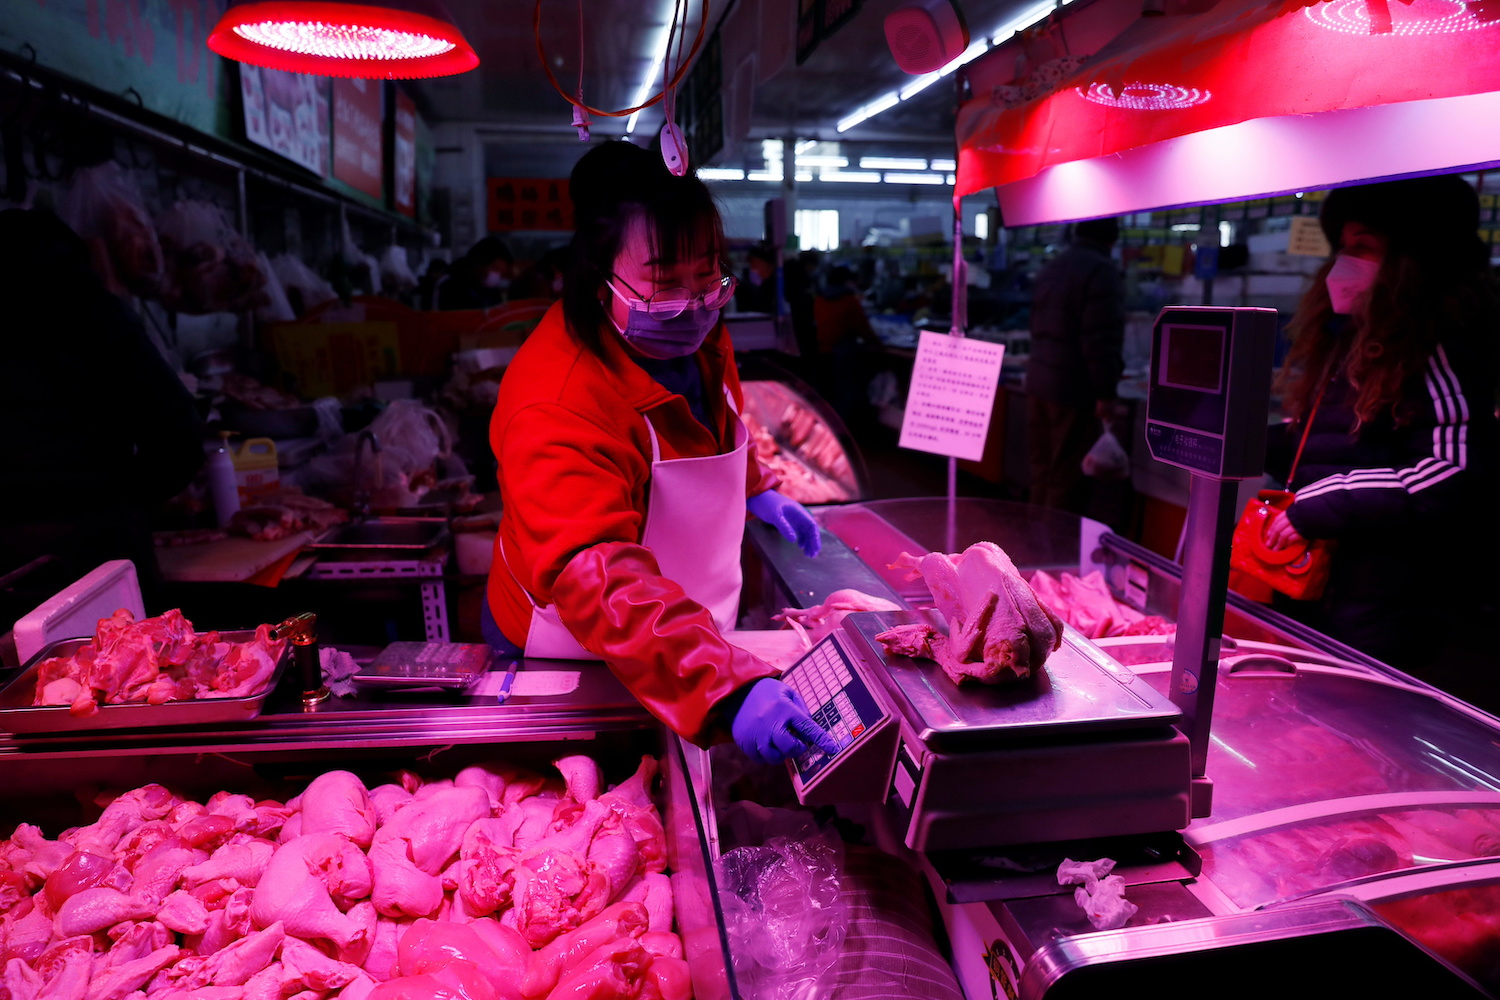 A food vendor weighs a chicken at her stall inside a market in Beijing on Jan 15. (Reuters Photo)